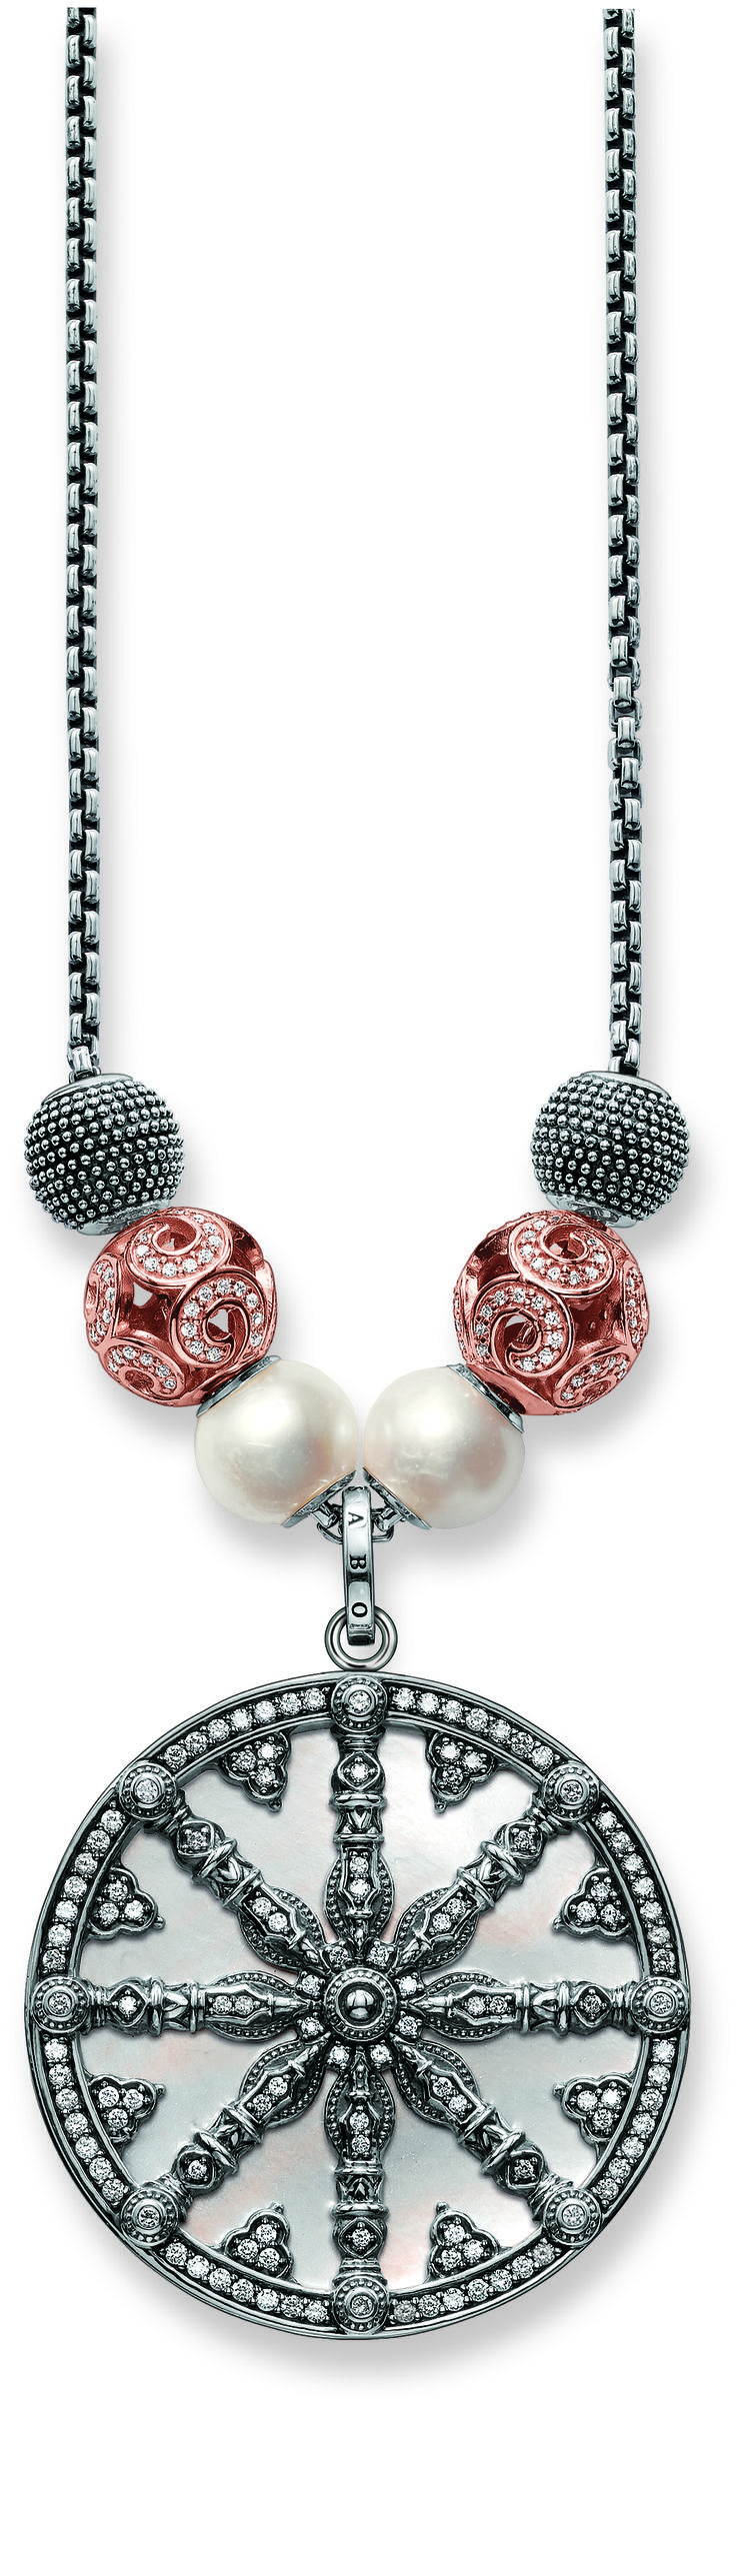 With the Spring/Summer collection, THOMAS SABO launches the new Karma Beads jewellery range.